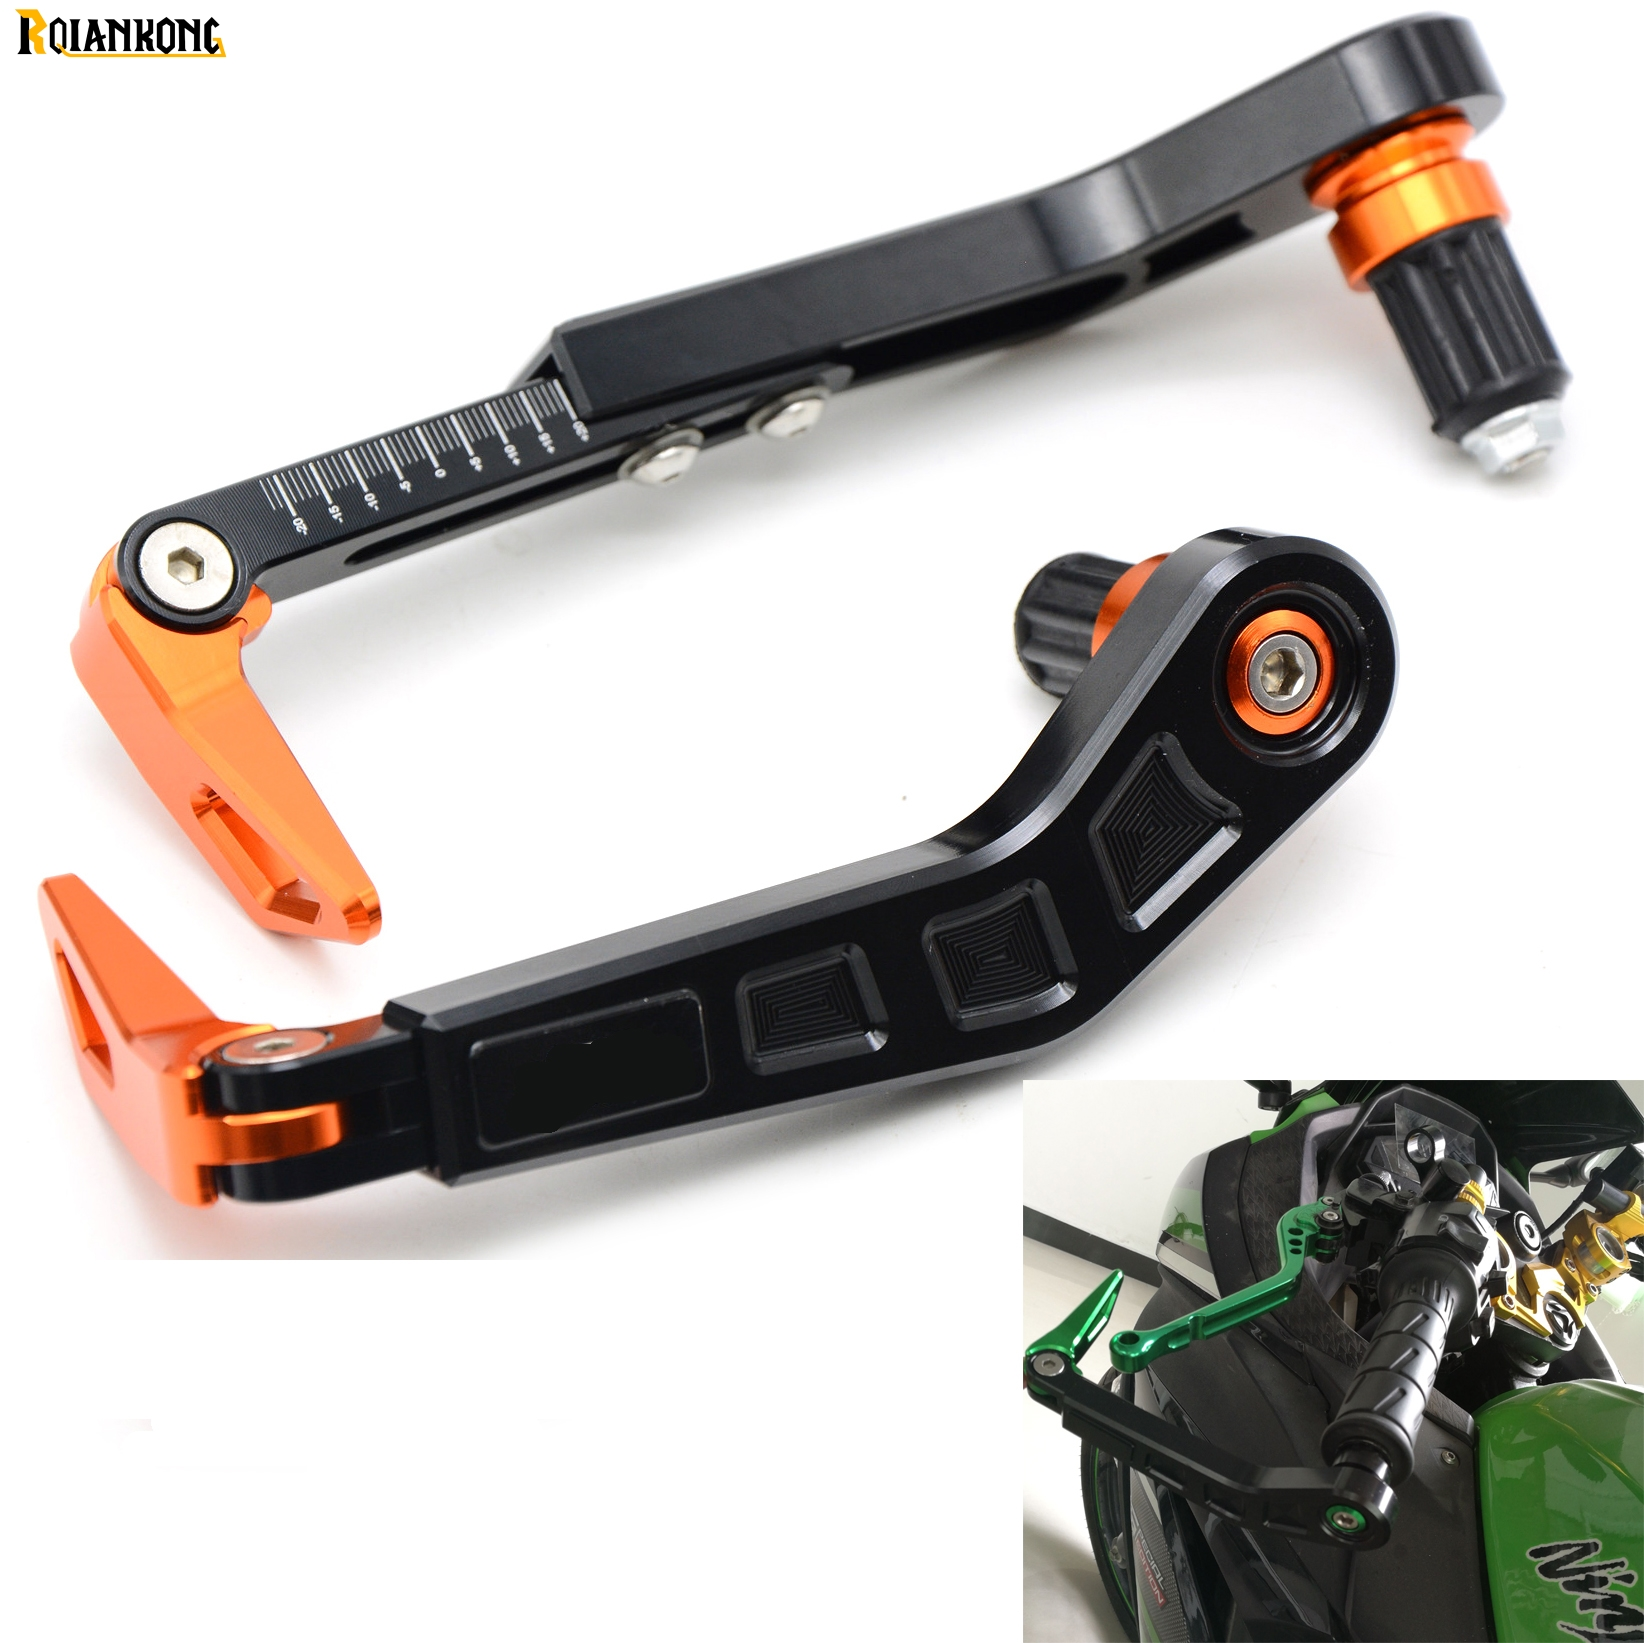 Universal 7/822mm Motorcycle Handlebar Brake Clutch Lever Protect Guard for KTM 200 250 390 690 990 Duke RC SMC/SMCR Enduro R mtkracing cnc aluminum brake clutch levers set short adjustable lever for ktm adventure 1050 690 duke smc smcr 690 enduro r